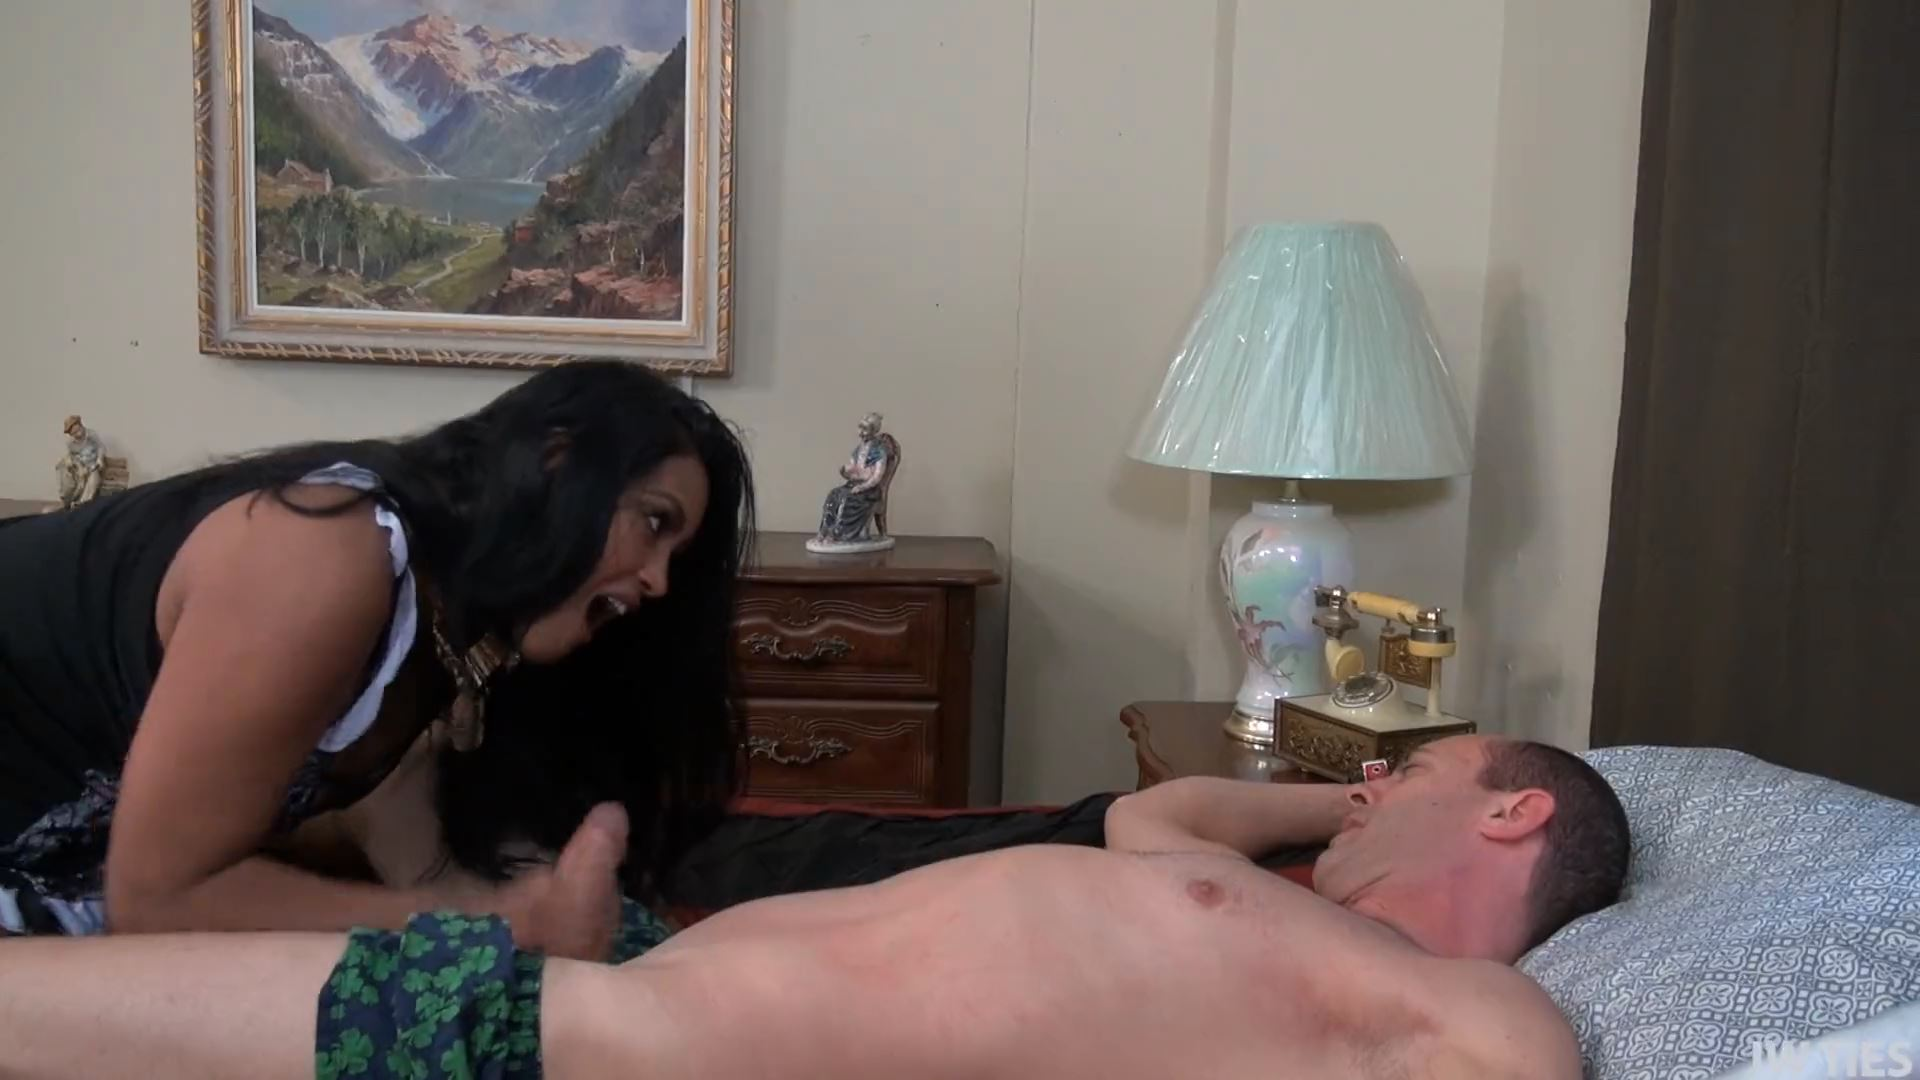 Mischevious Maid Maxine - TICKLED AND ABUSED MALE - FULL HD/1080p/MP4